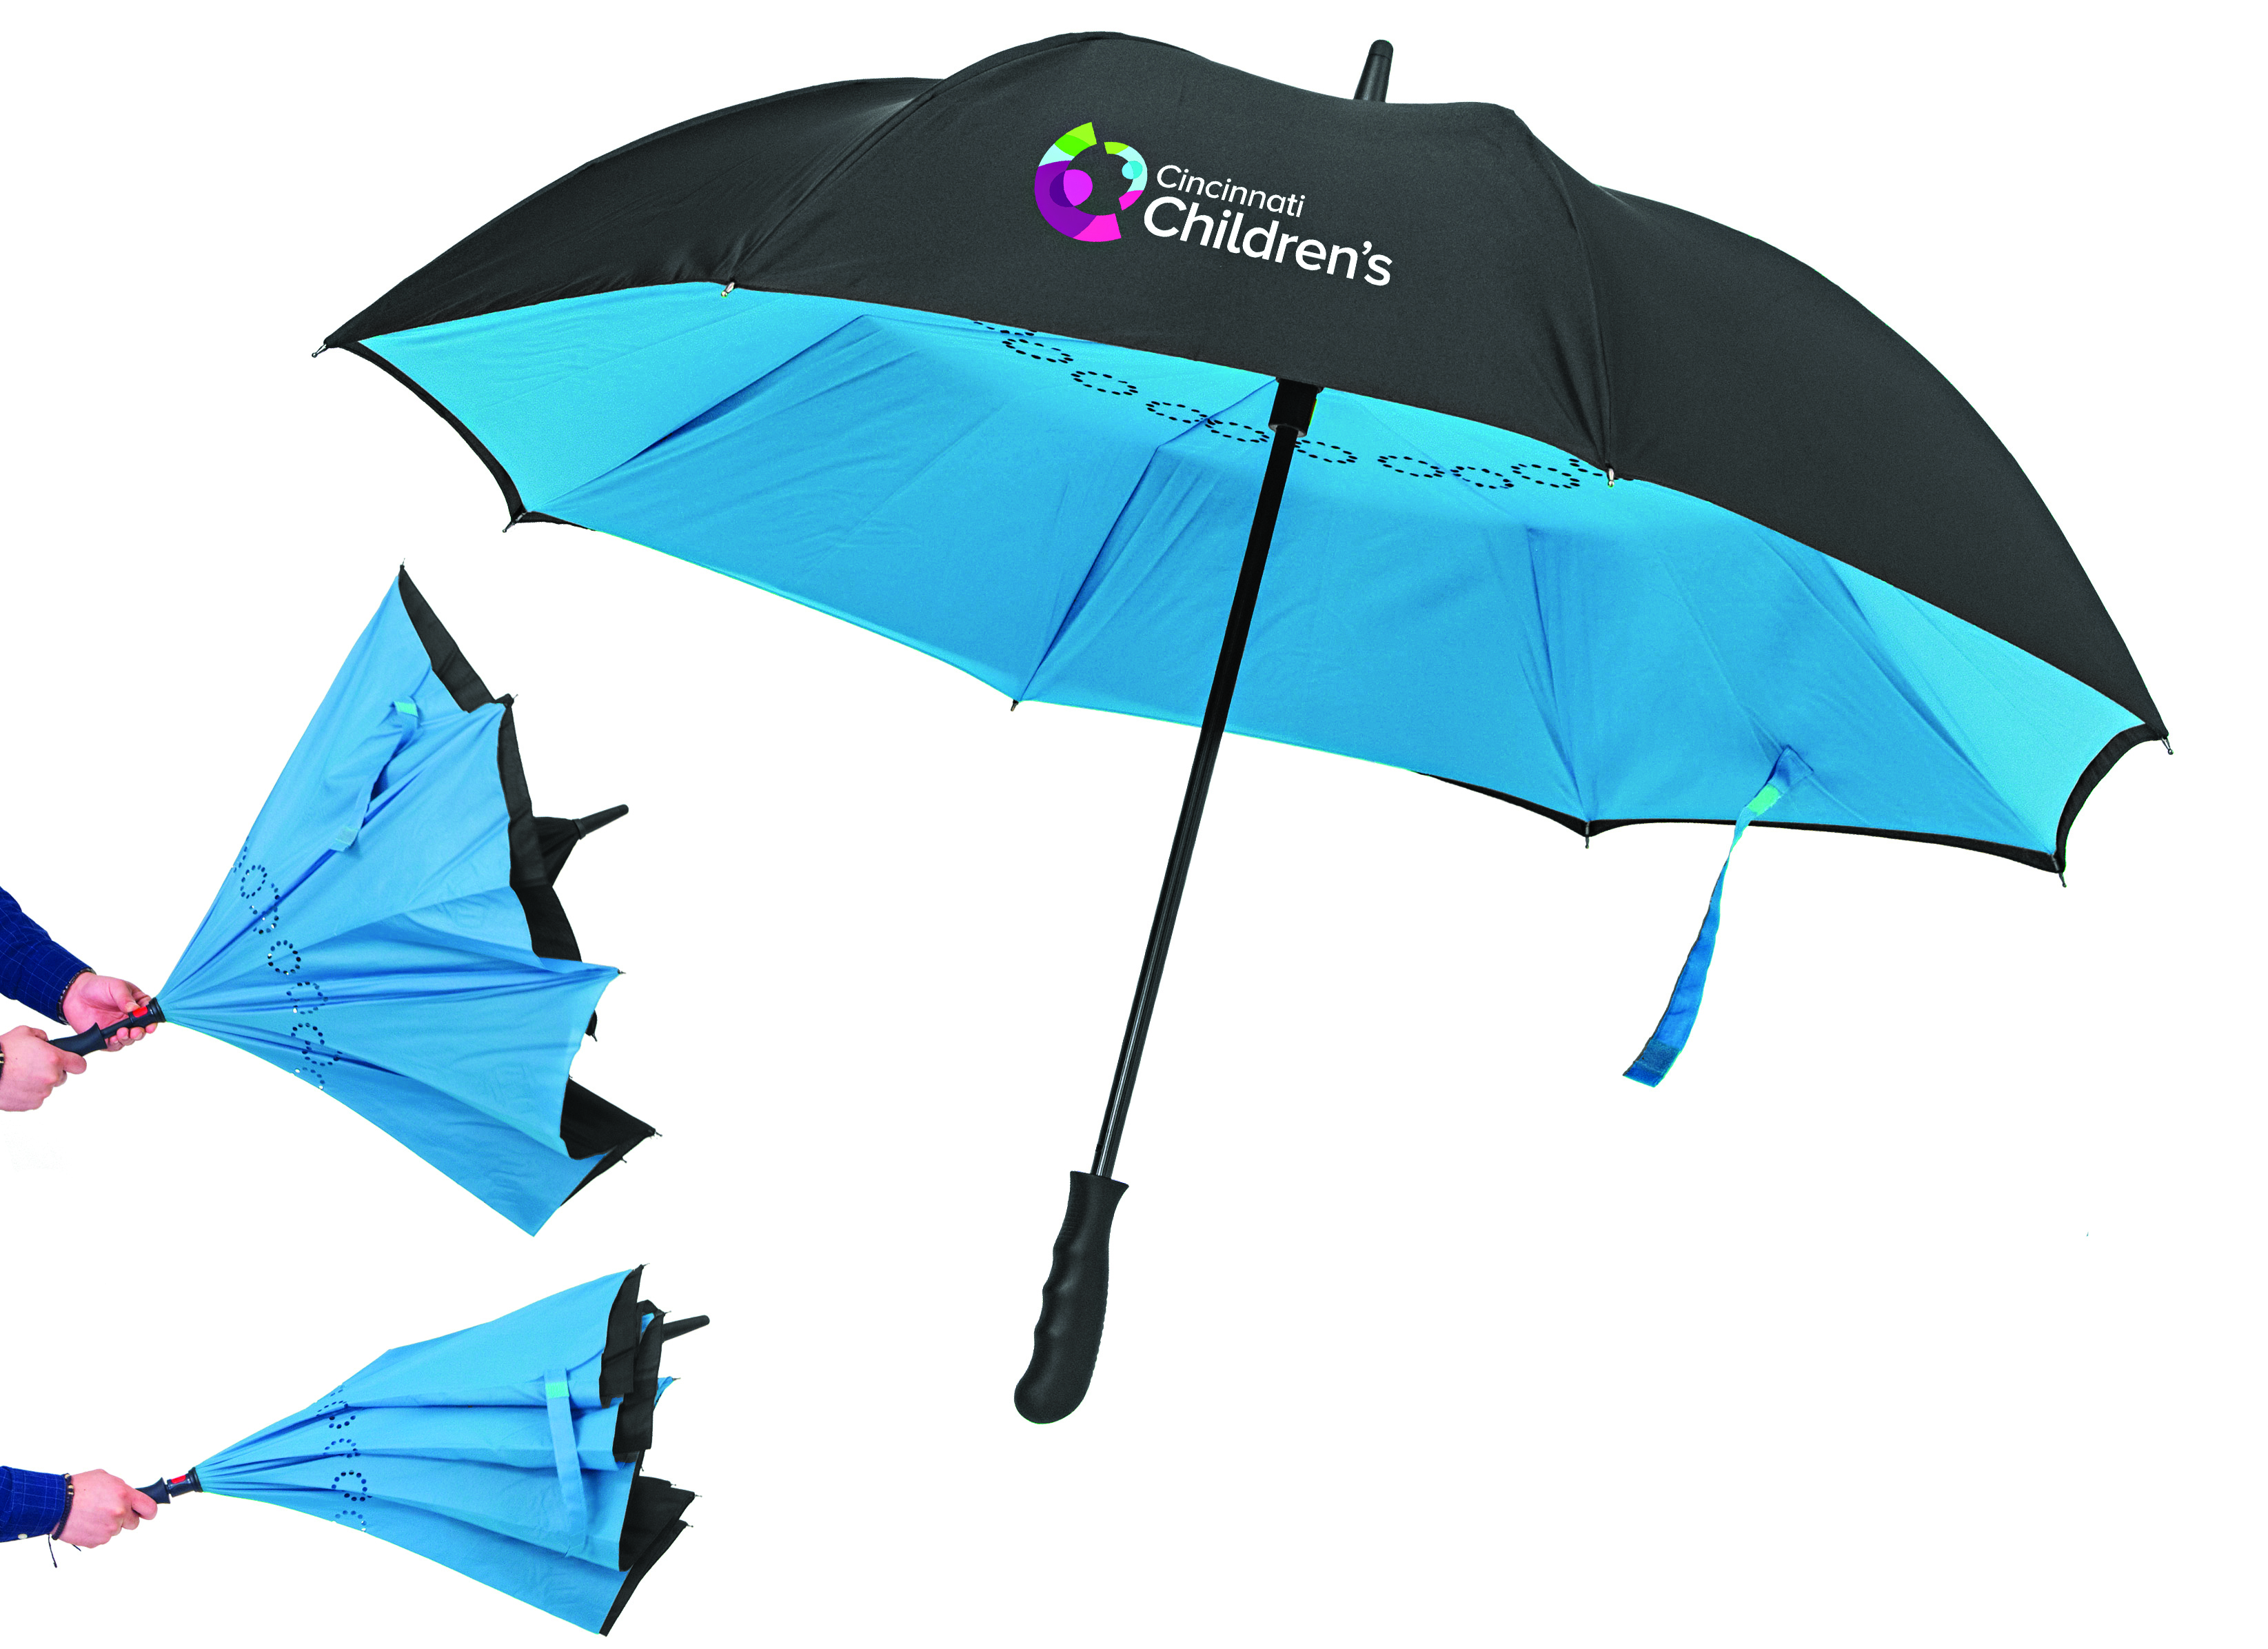 10 promotional umbrellas for golf and outdoors promo marketing